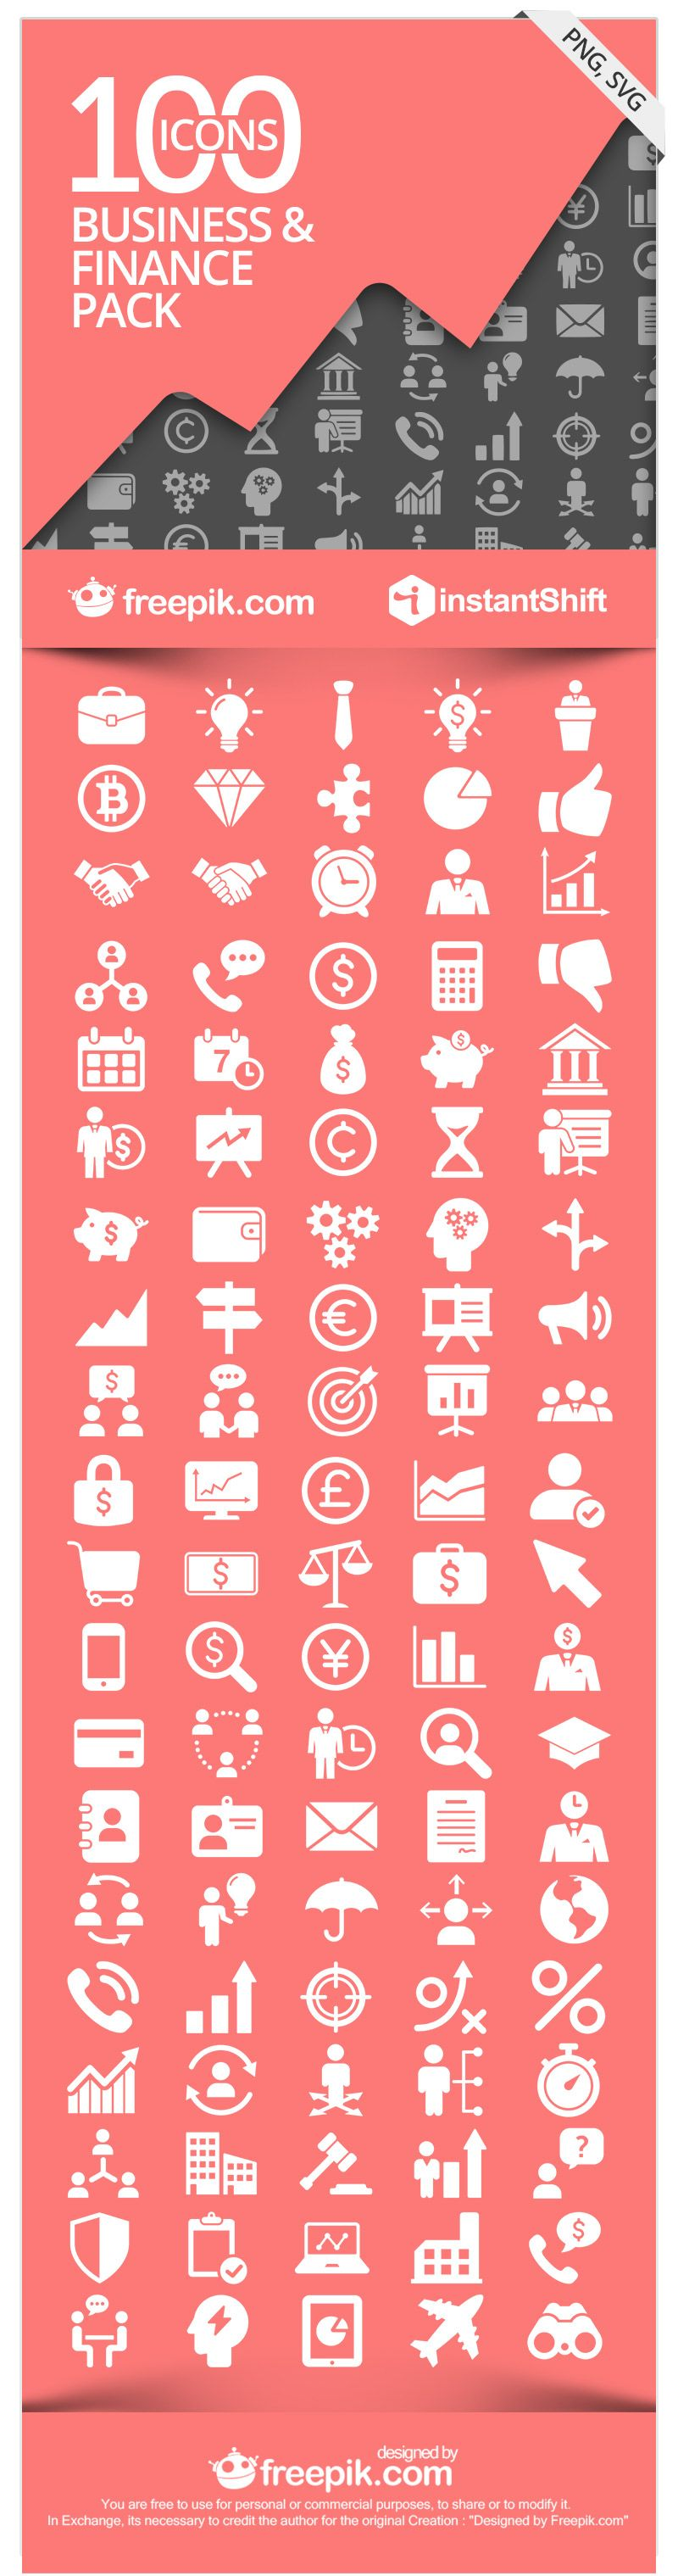 The Free Business & Finance Icon Set Business